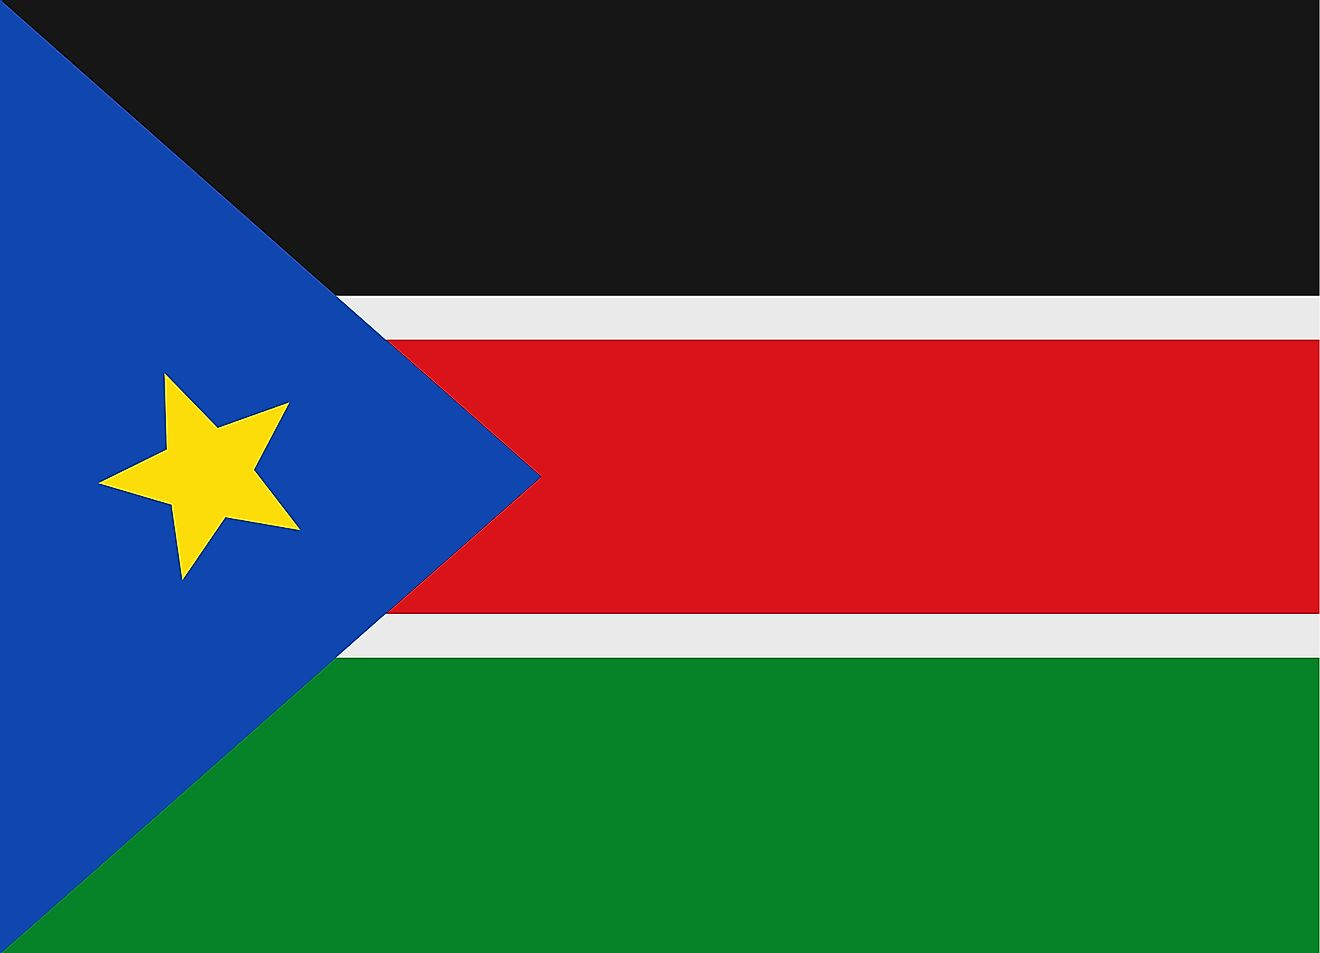 The National Flag of South Sudan featured three equal horizontal bands of black (top), red, and green. The red band is edged in white and a blue isosceles triangle is based on the hoist side of the flag containing a gold, five-pointed star.